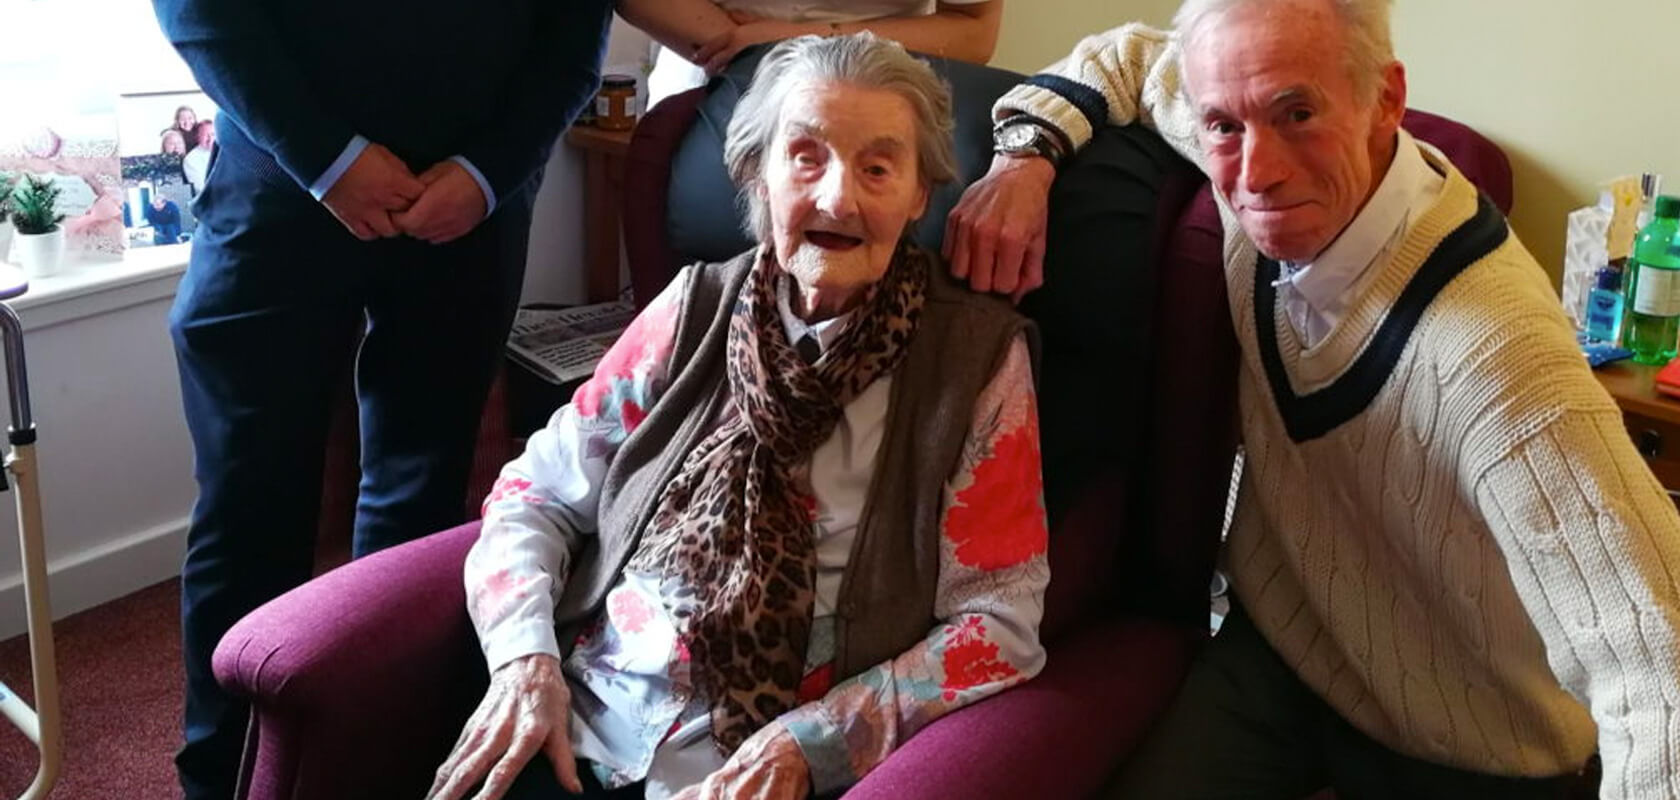 Recliners Chair Gifted to Scotland's Oldest Woman